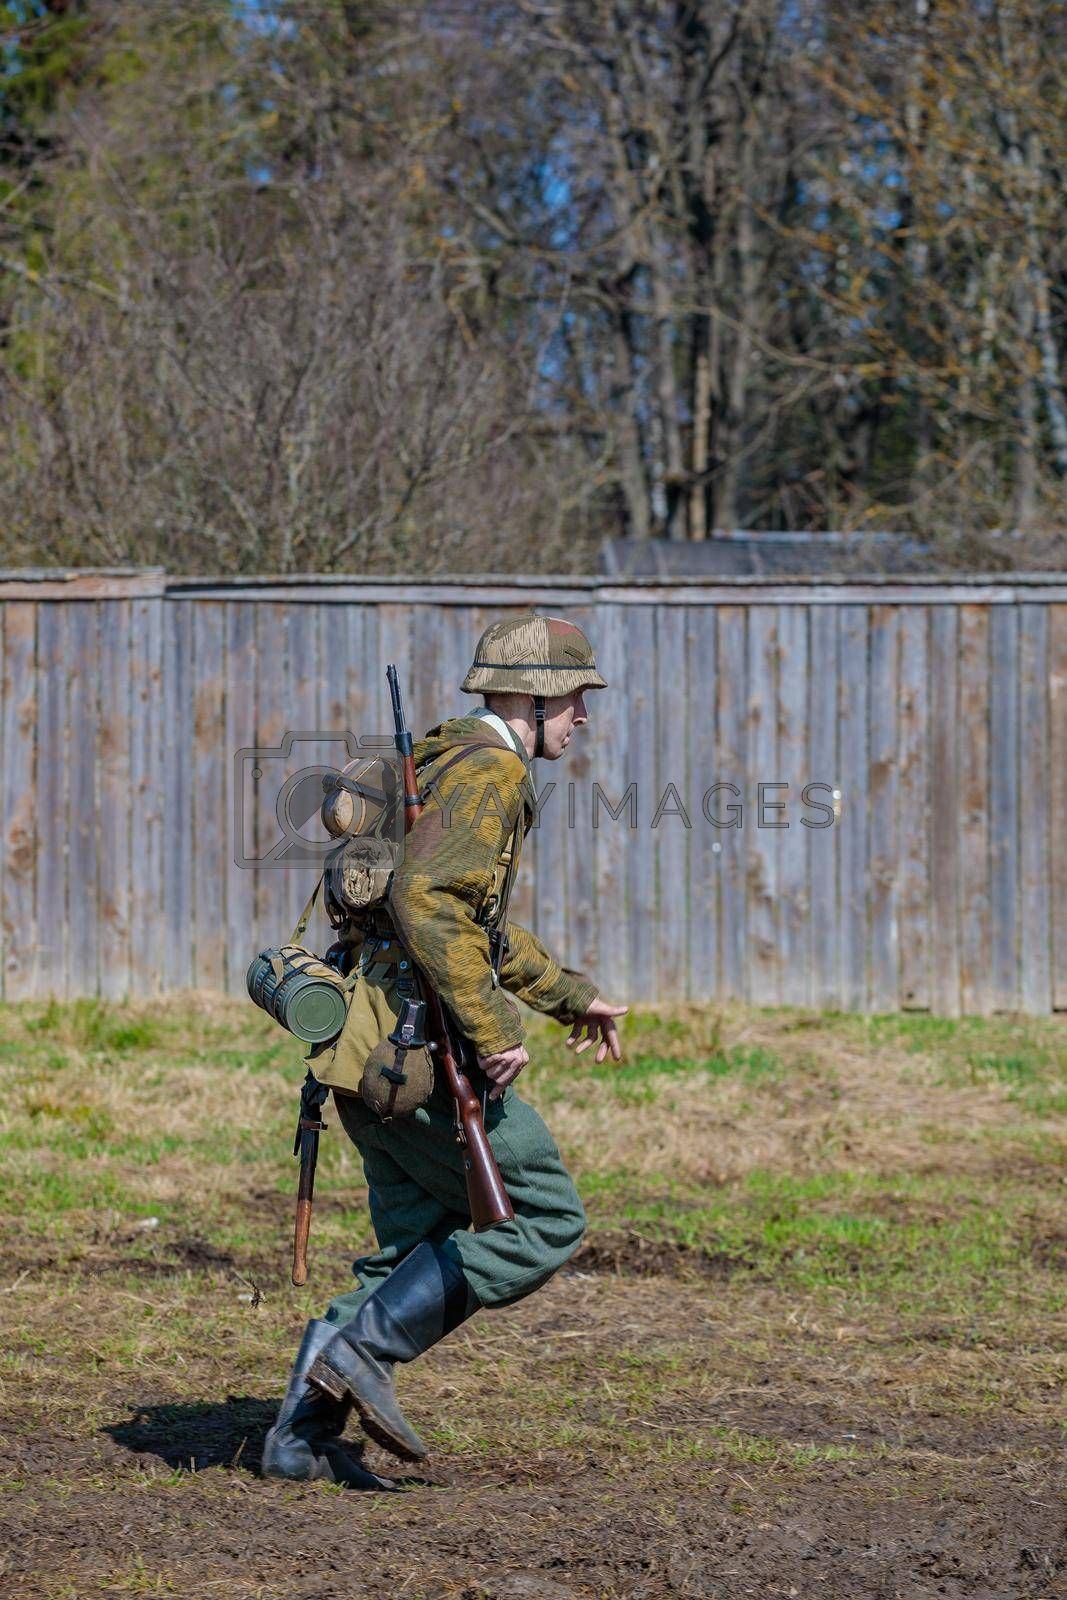 Reconstruction of the Second World War. A German soldier is running. The Great Patriotic War. Liberation of Odessa. Zelenograd Russia April 18, 2021